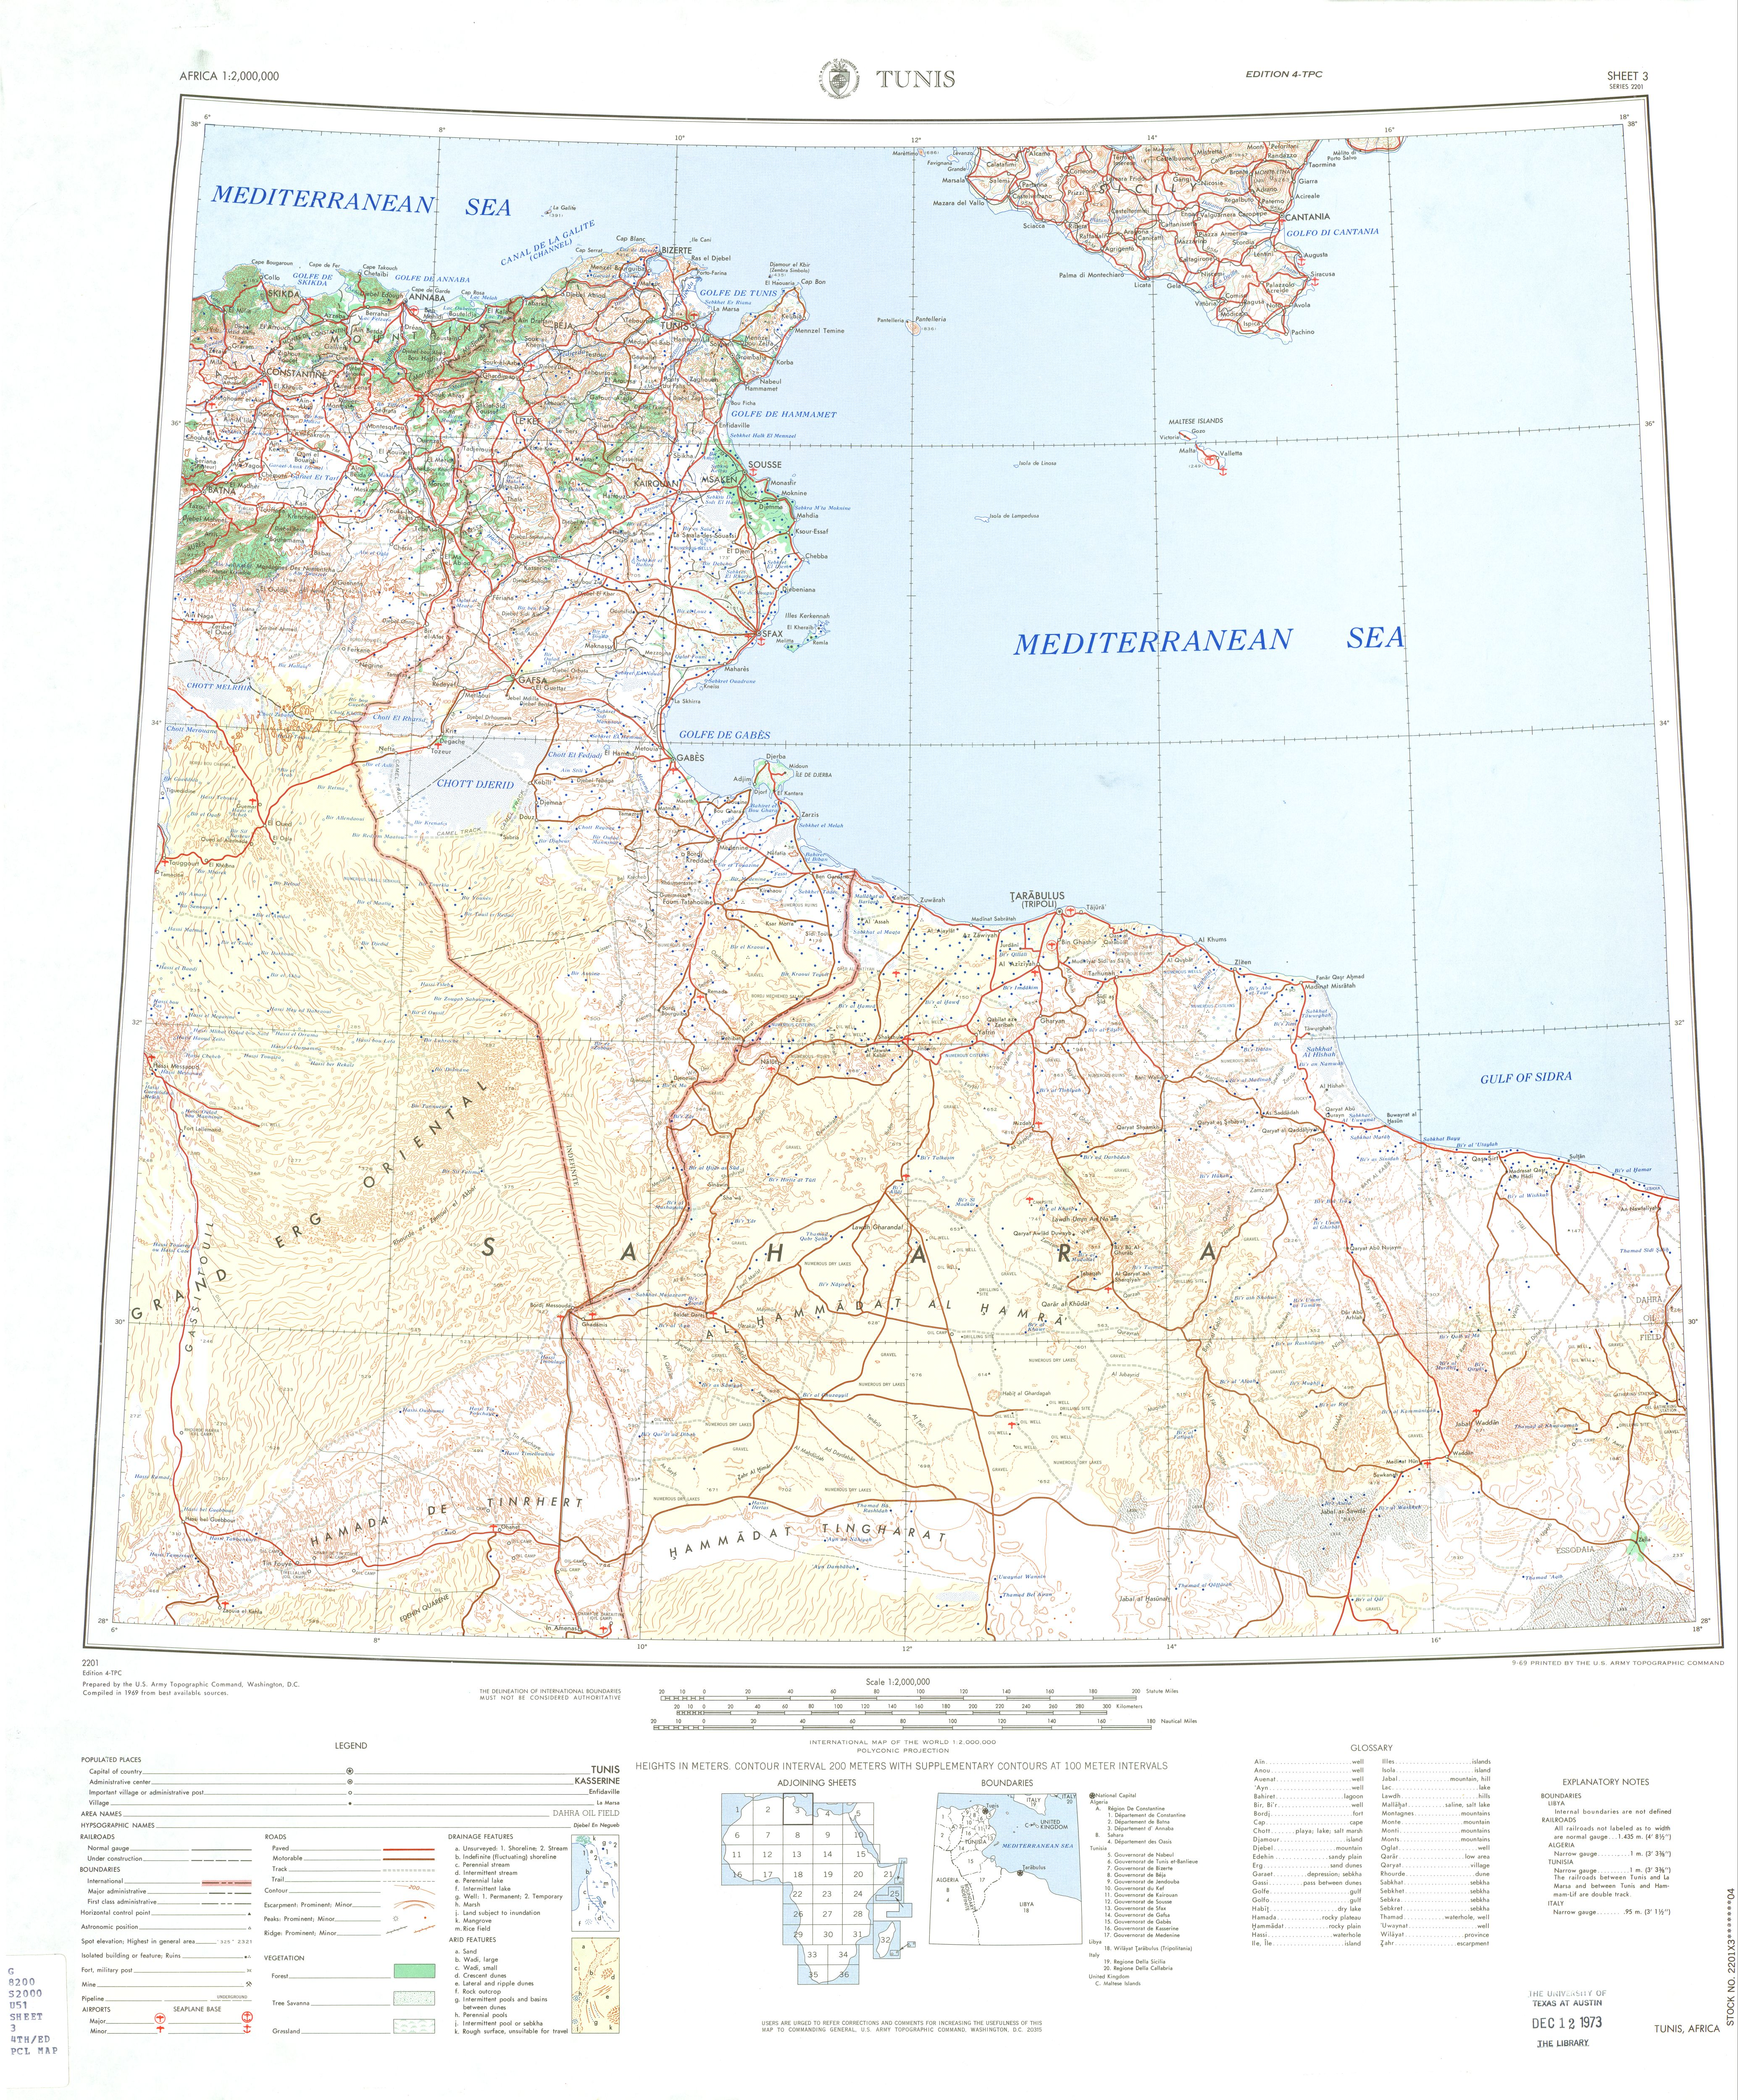 Tunis Topographic Sheet Map, Africa 1969